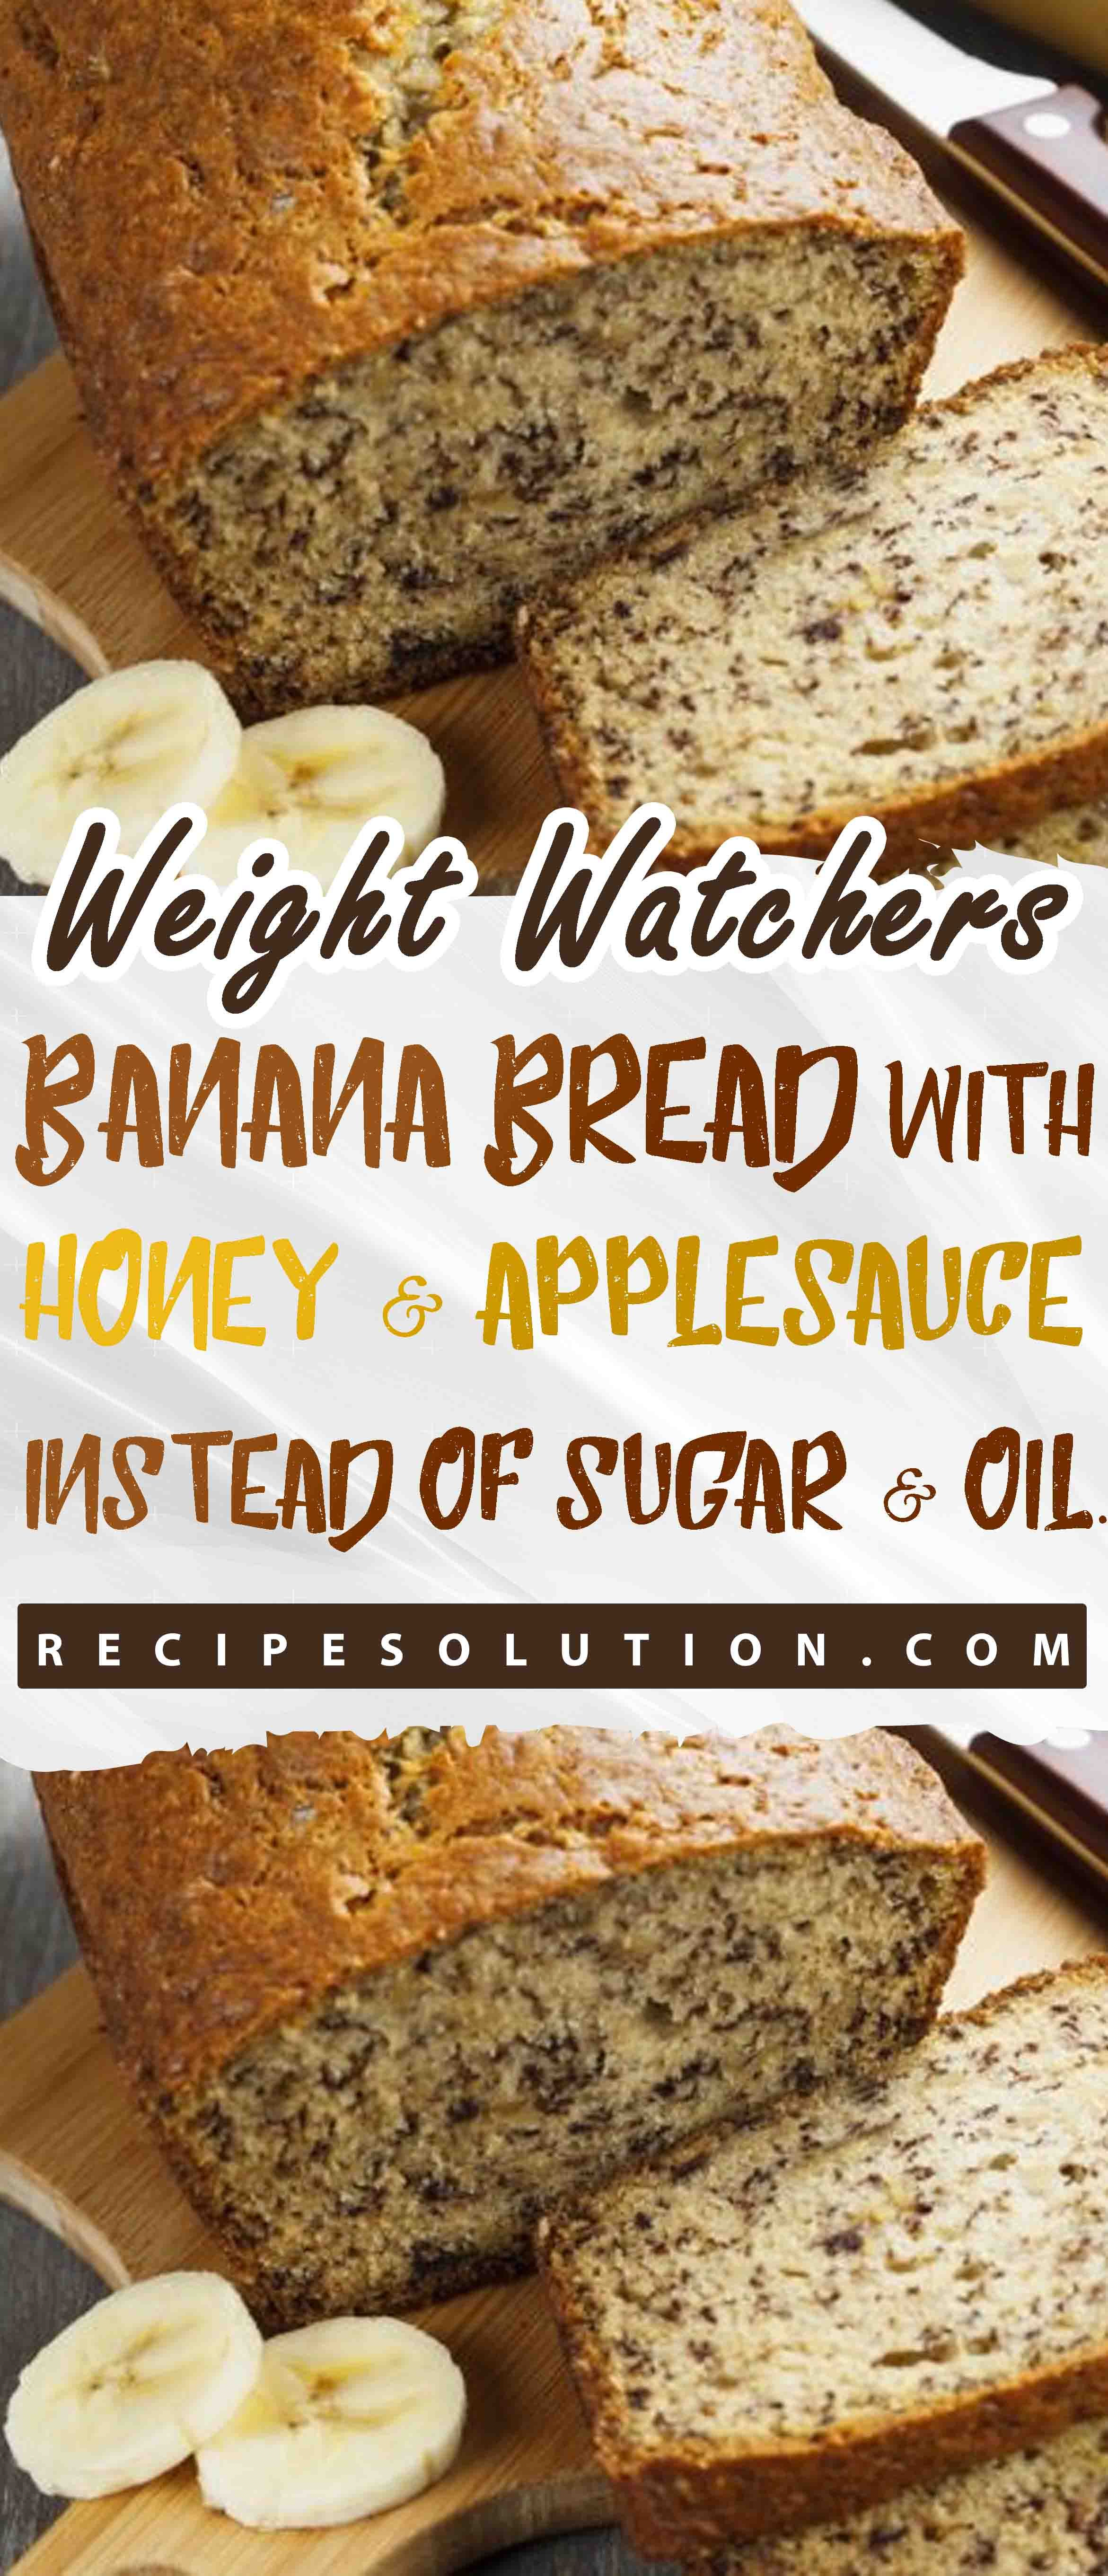 Banana Bread With Honey And Applesauce Instead Of Sugar Oil In 2020 Weight Watcher Banana Bread Banana Healthy Banana Recipes